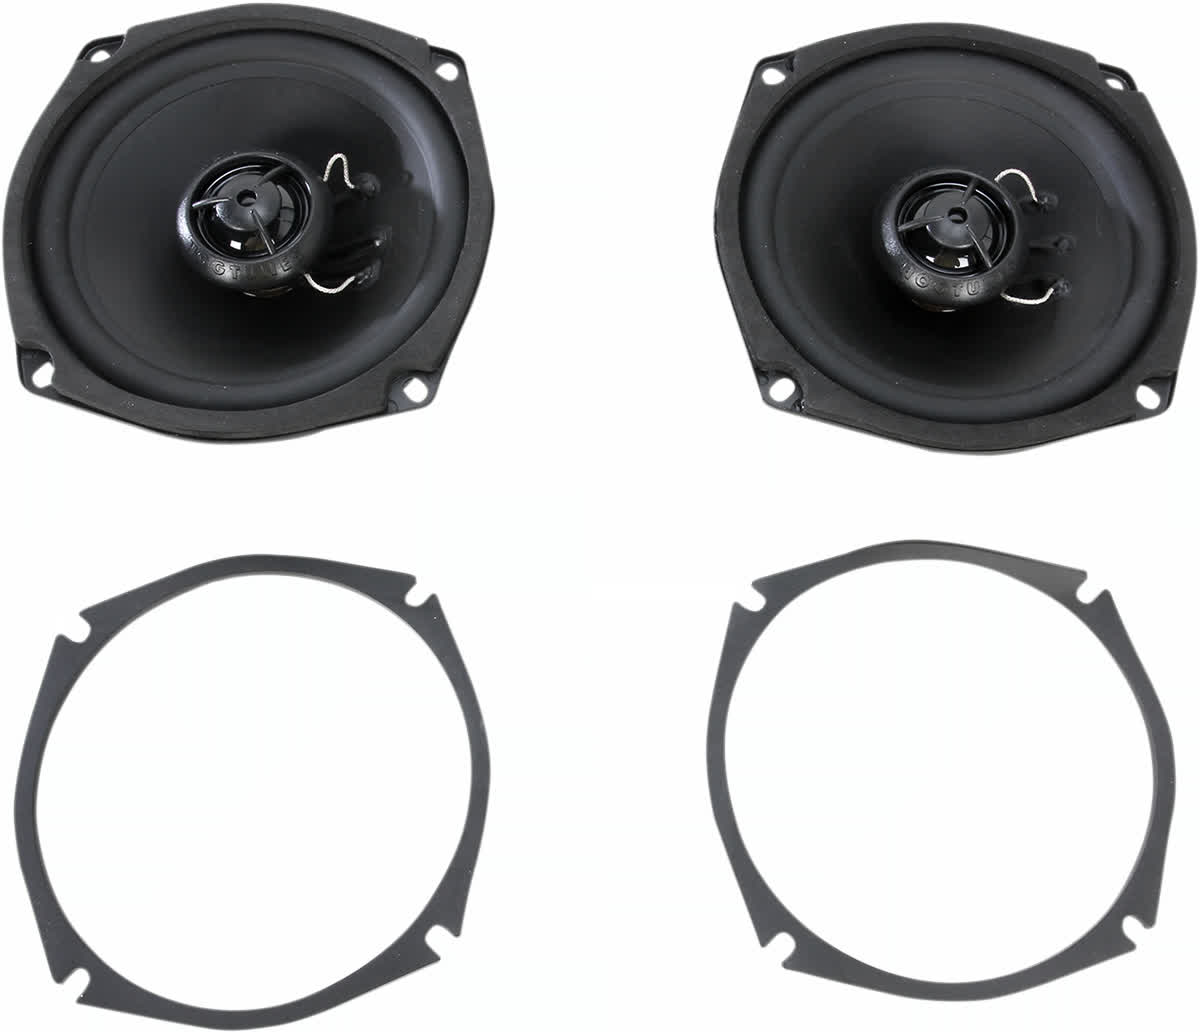 Hogtunes 356F 5.25in. Replacement 6 ohm Front Speaker Harley 4405-0327